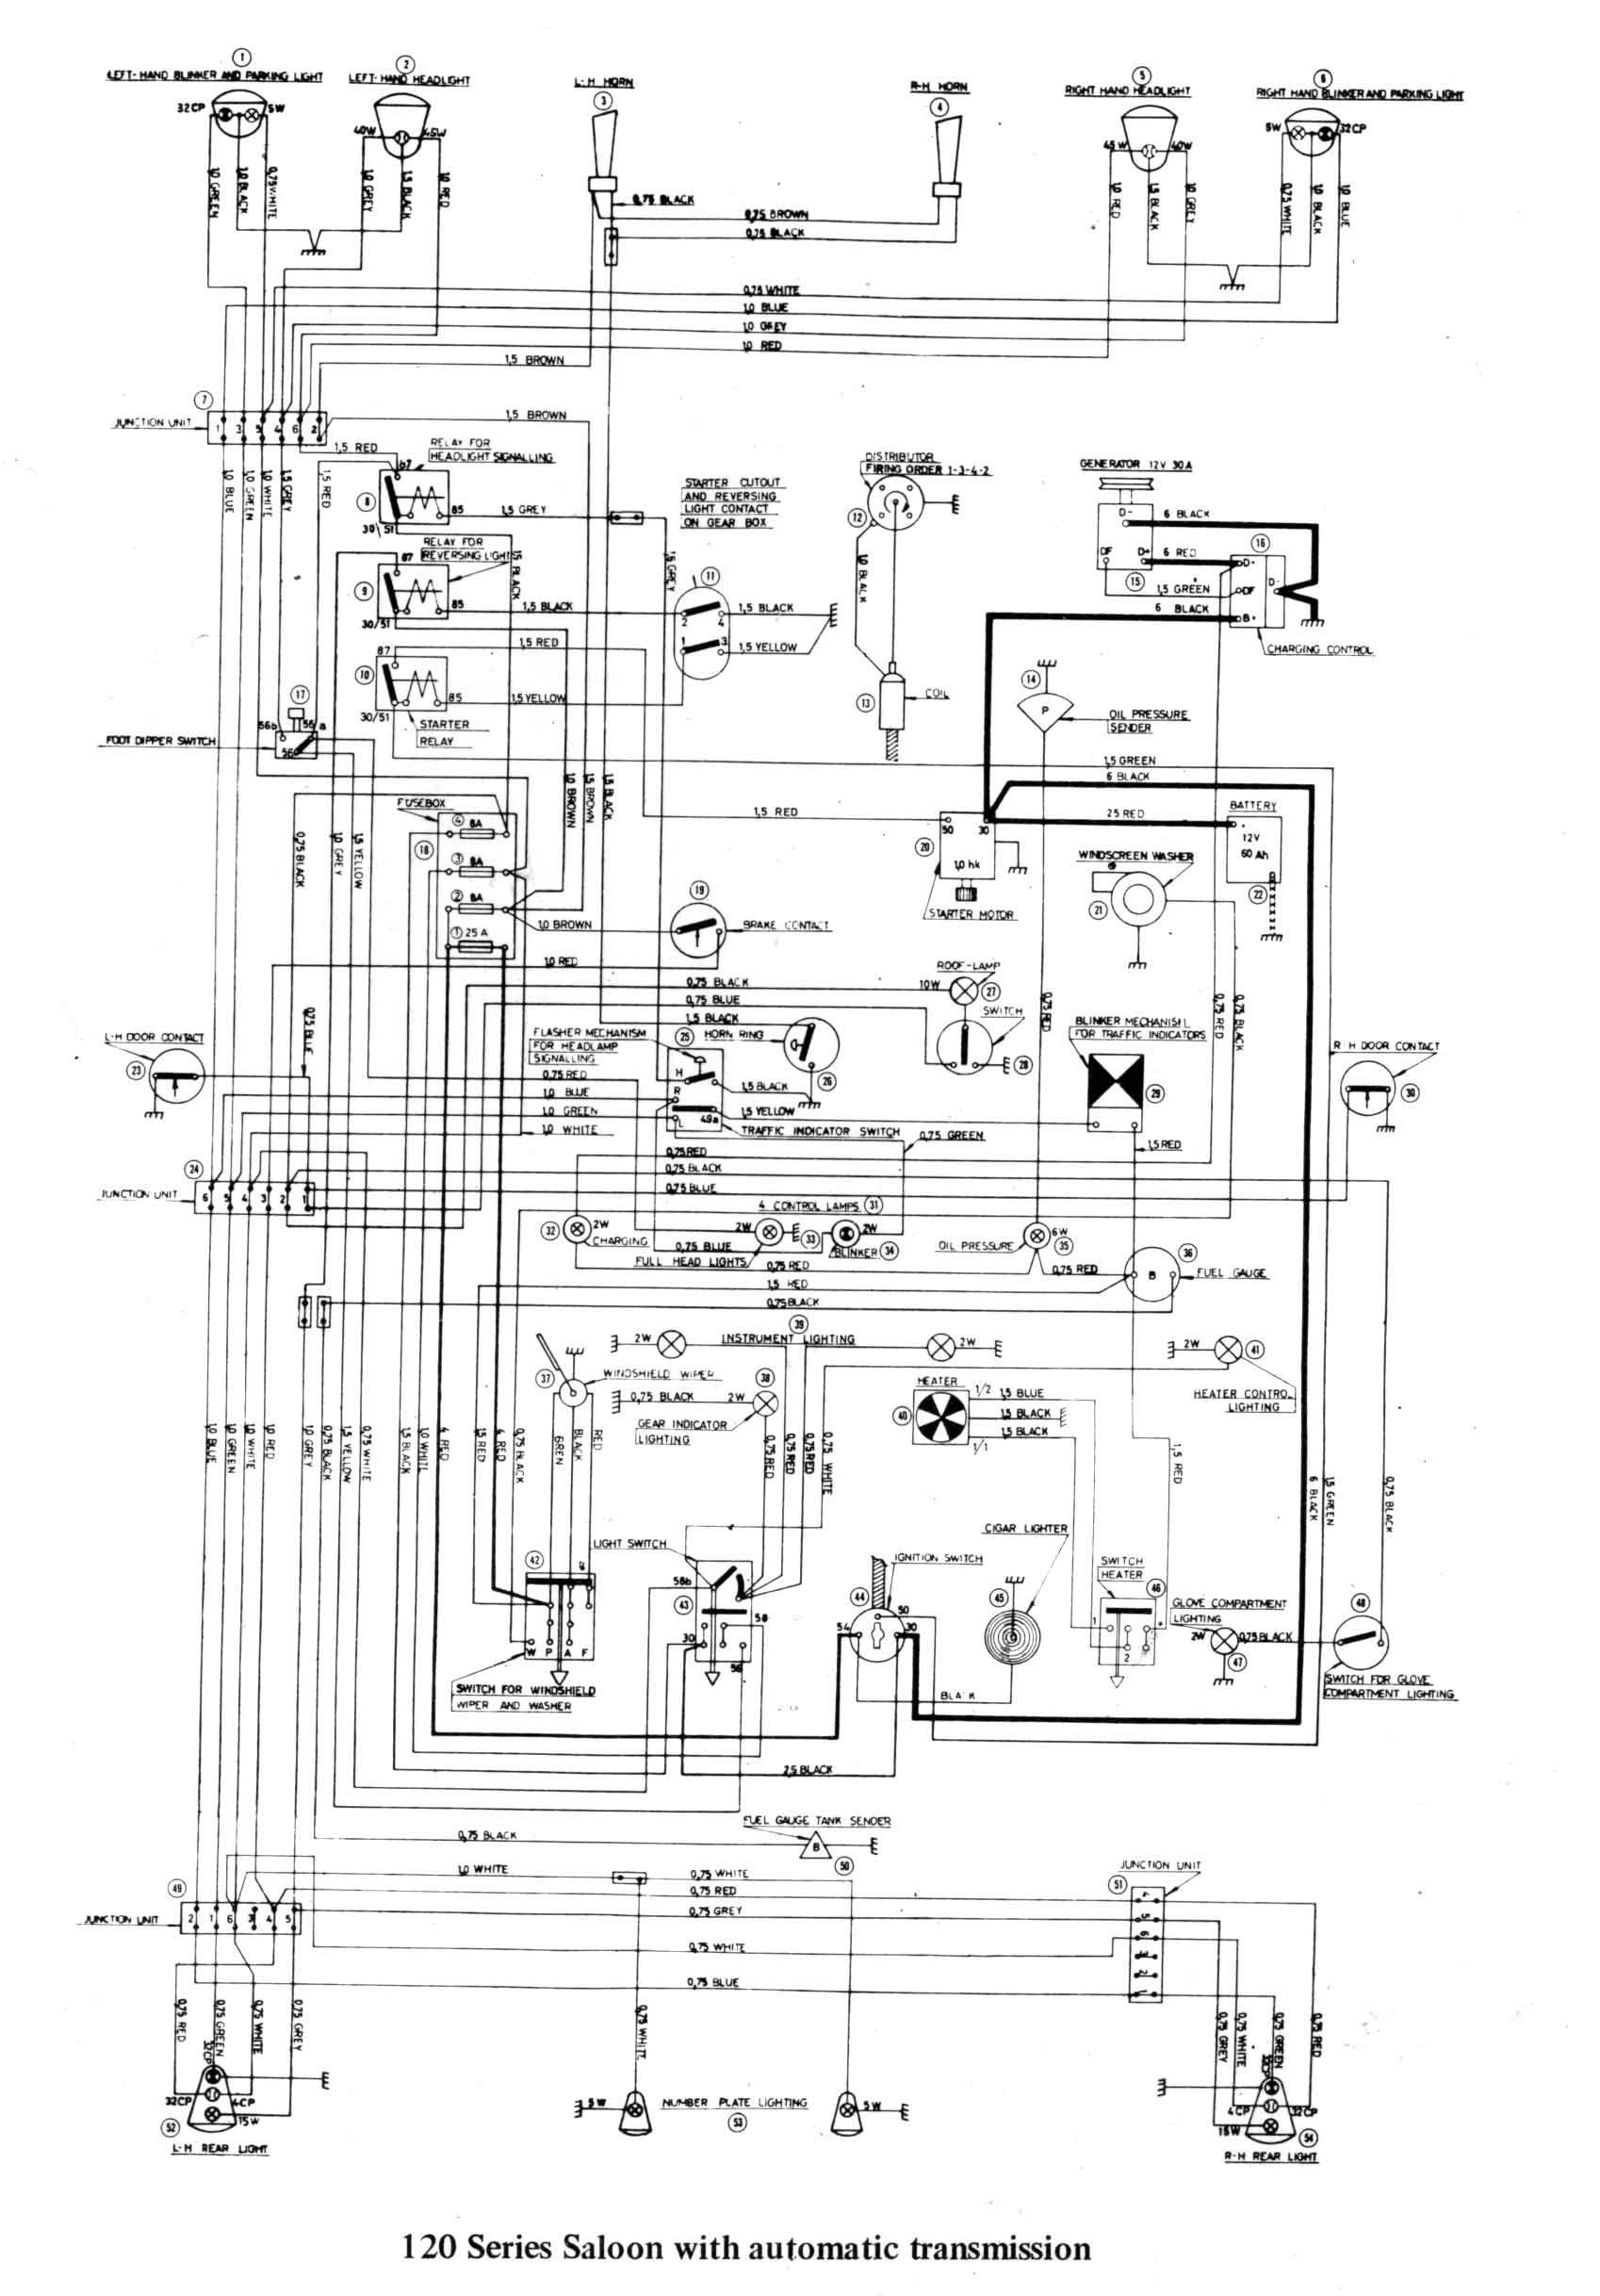 Mitsubishi Eclipse Engine Diagram Vw 2 0 Engine Diagram Automatic  Transmission Schematic Diagram Sw Em Of